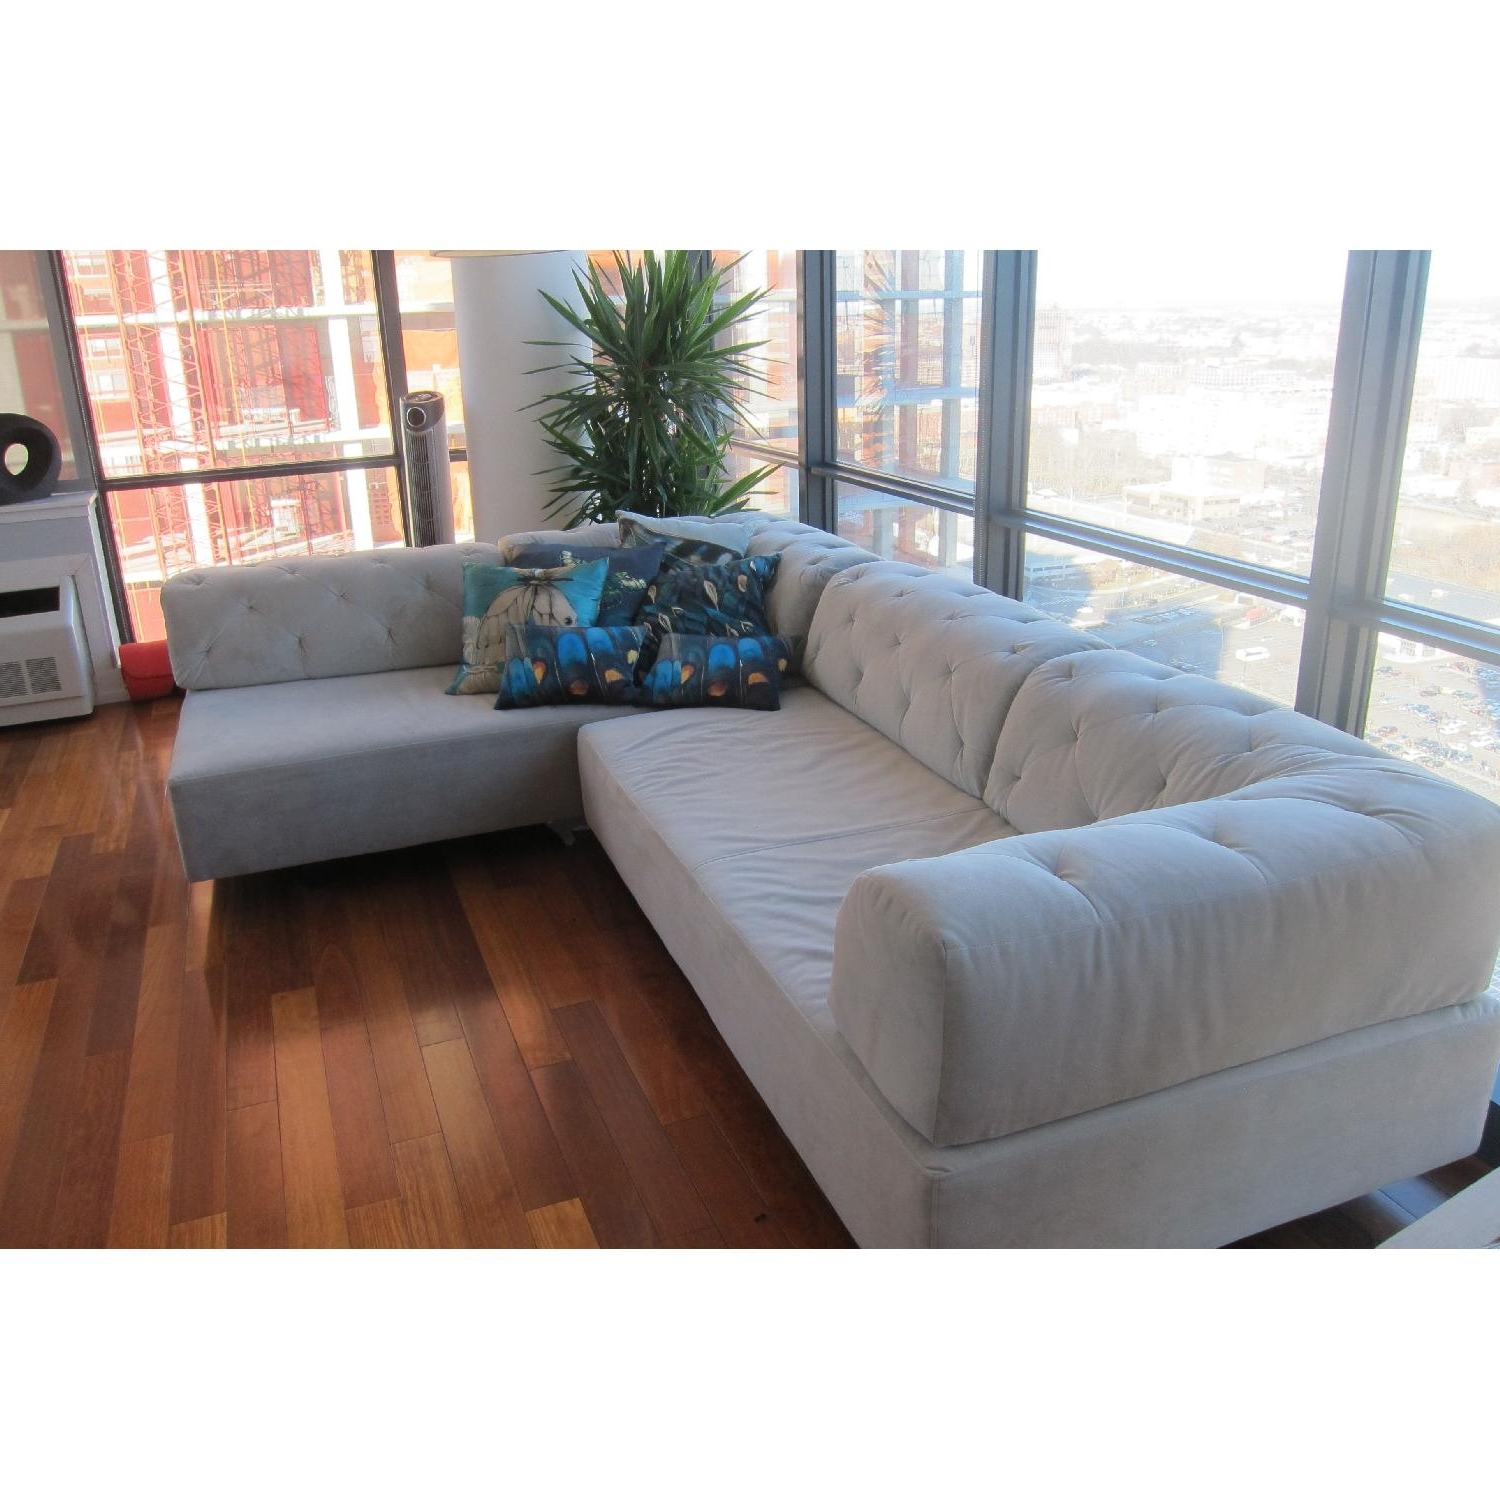 Pinterest Pertaining To Well Liked Sectional Sofas At Chicago (View 6 of 15)